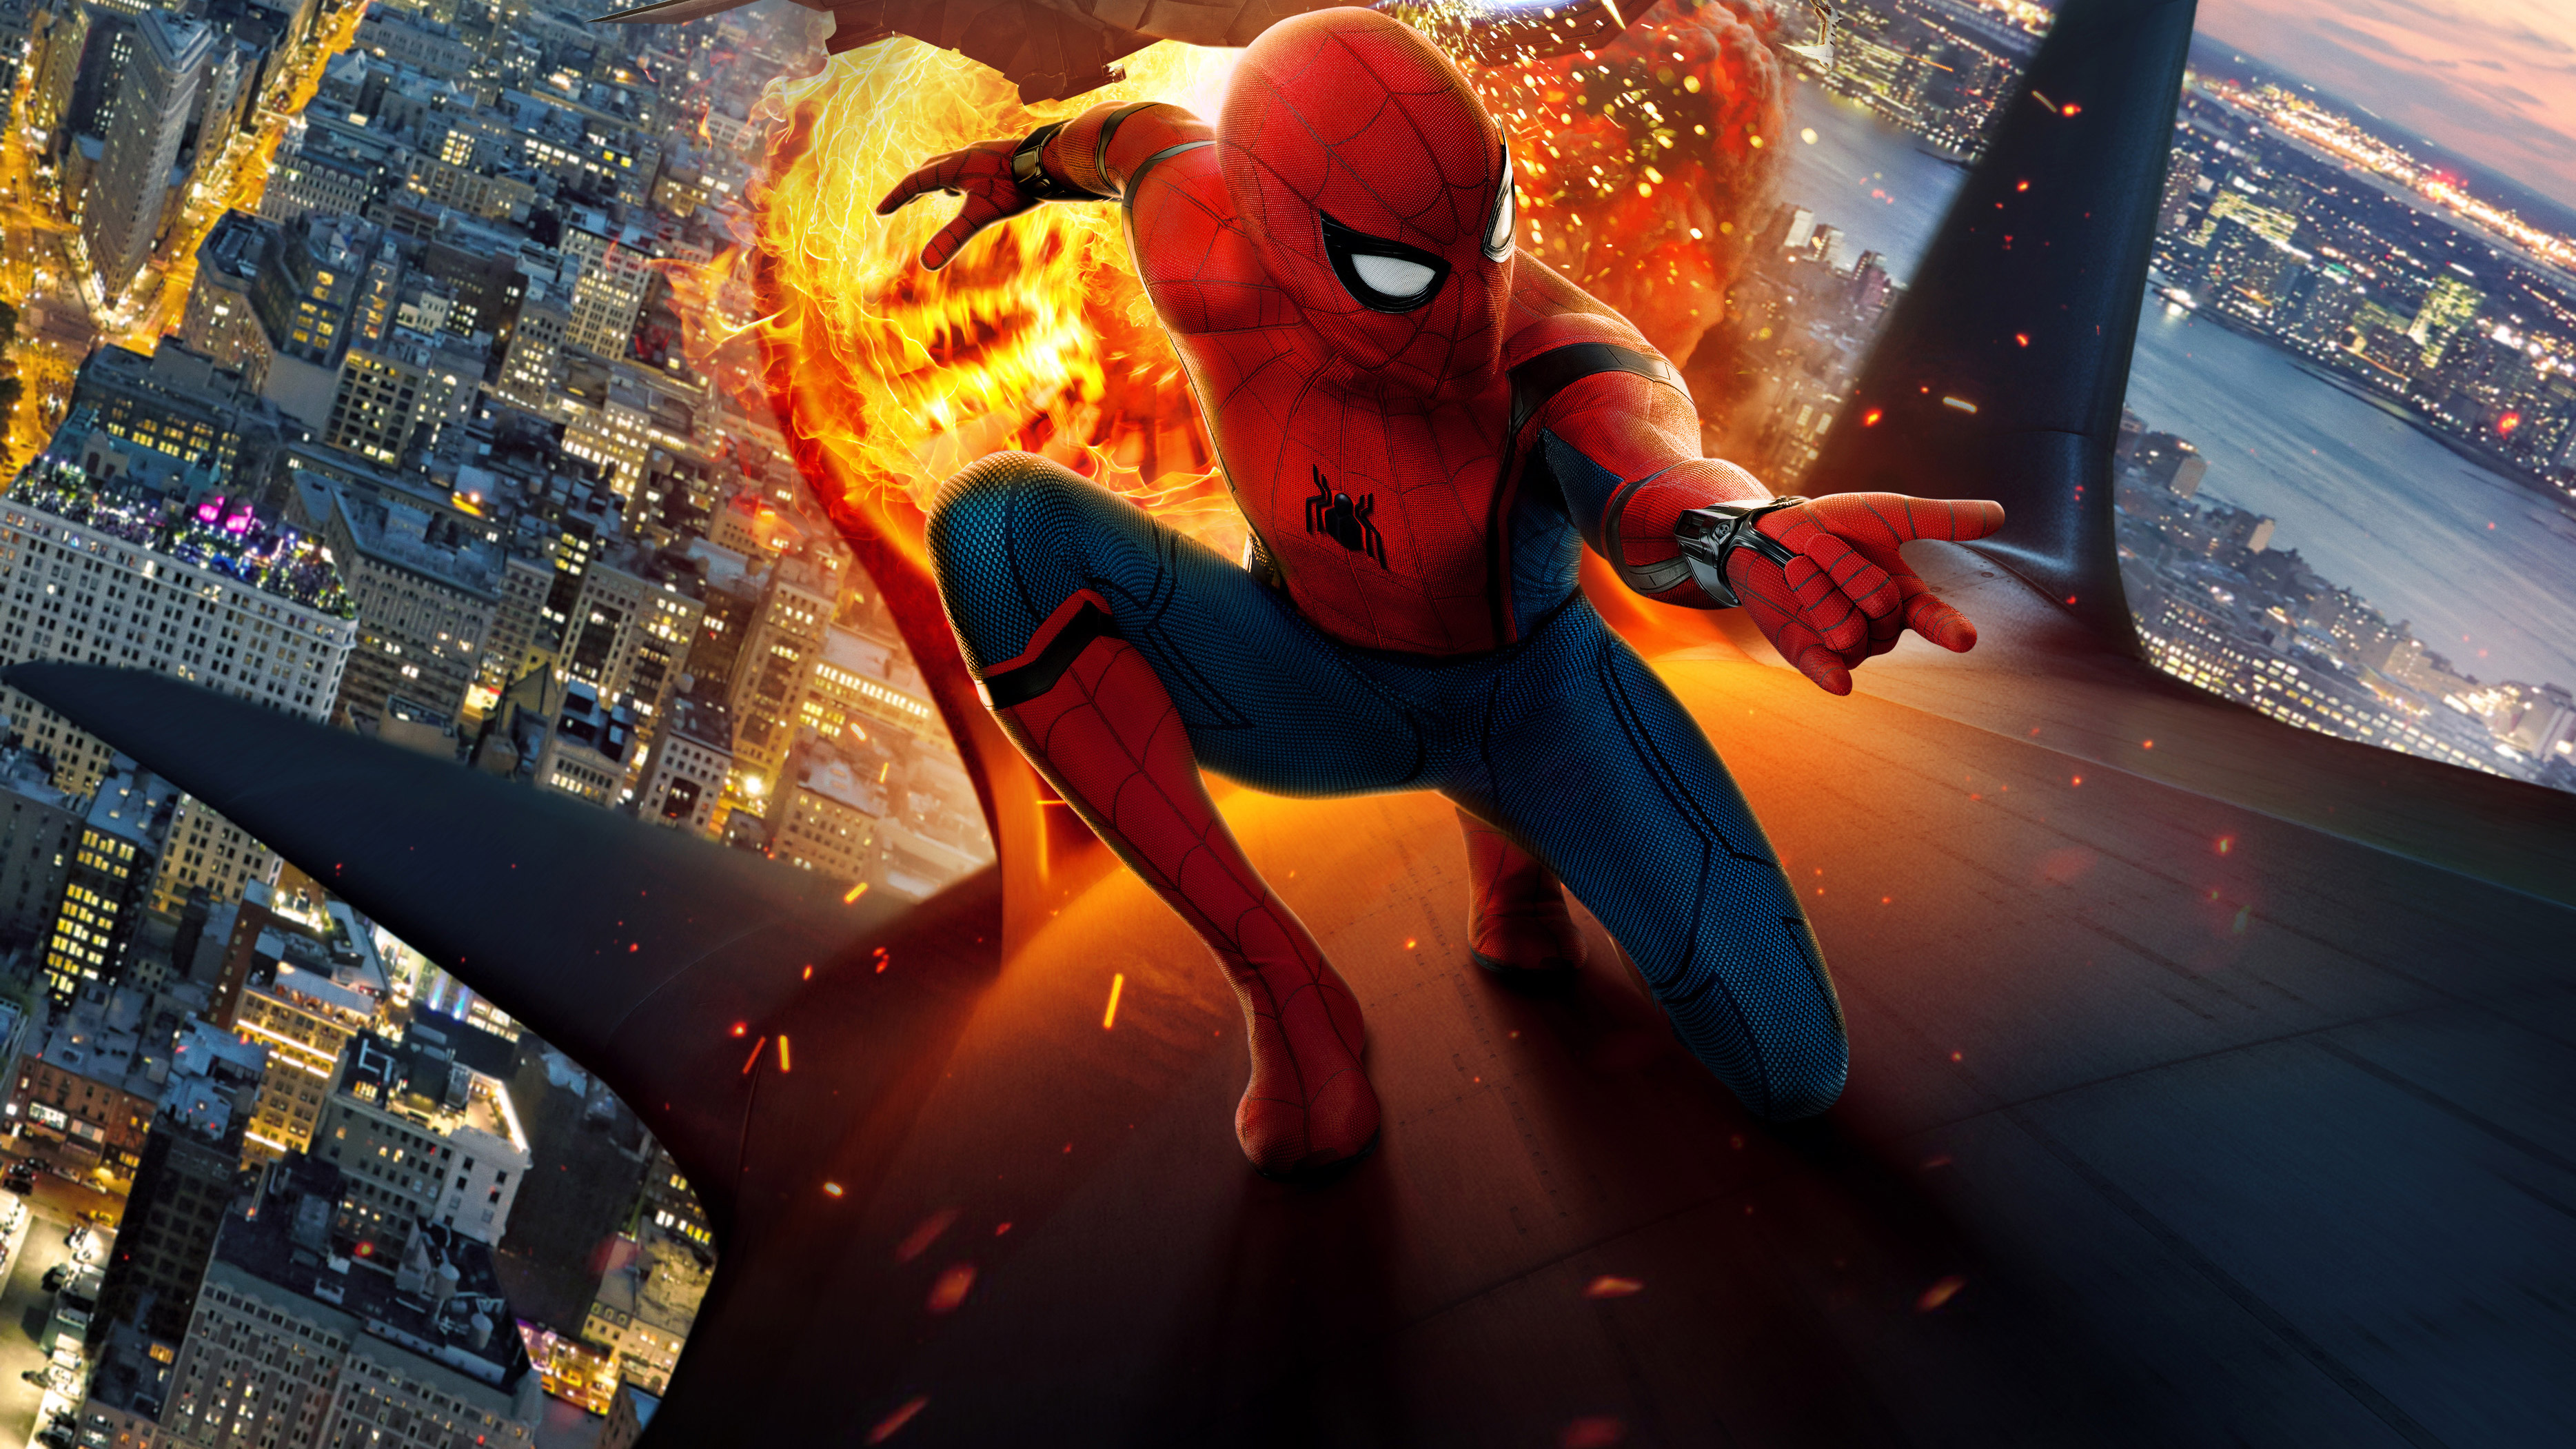 1080x1920 Spiderman Homecoming New Movie Poster Chinese ...